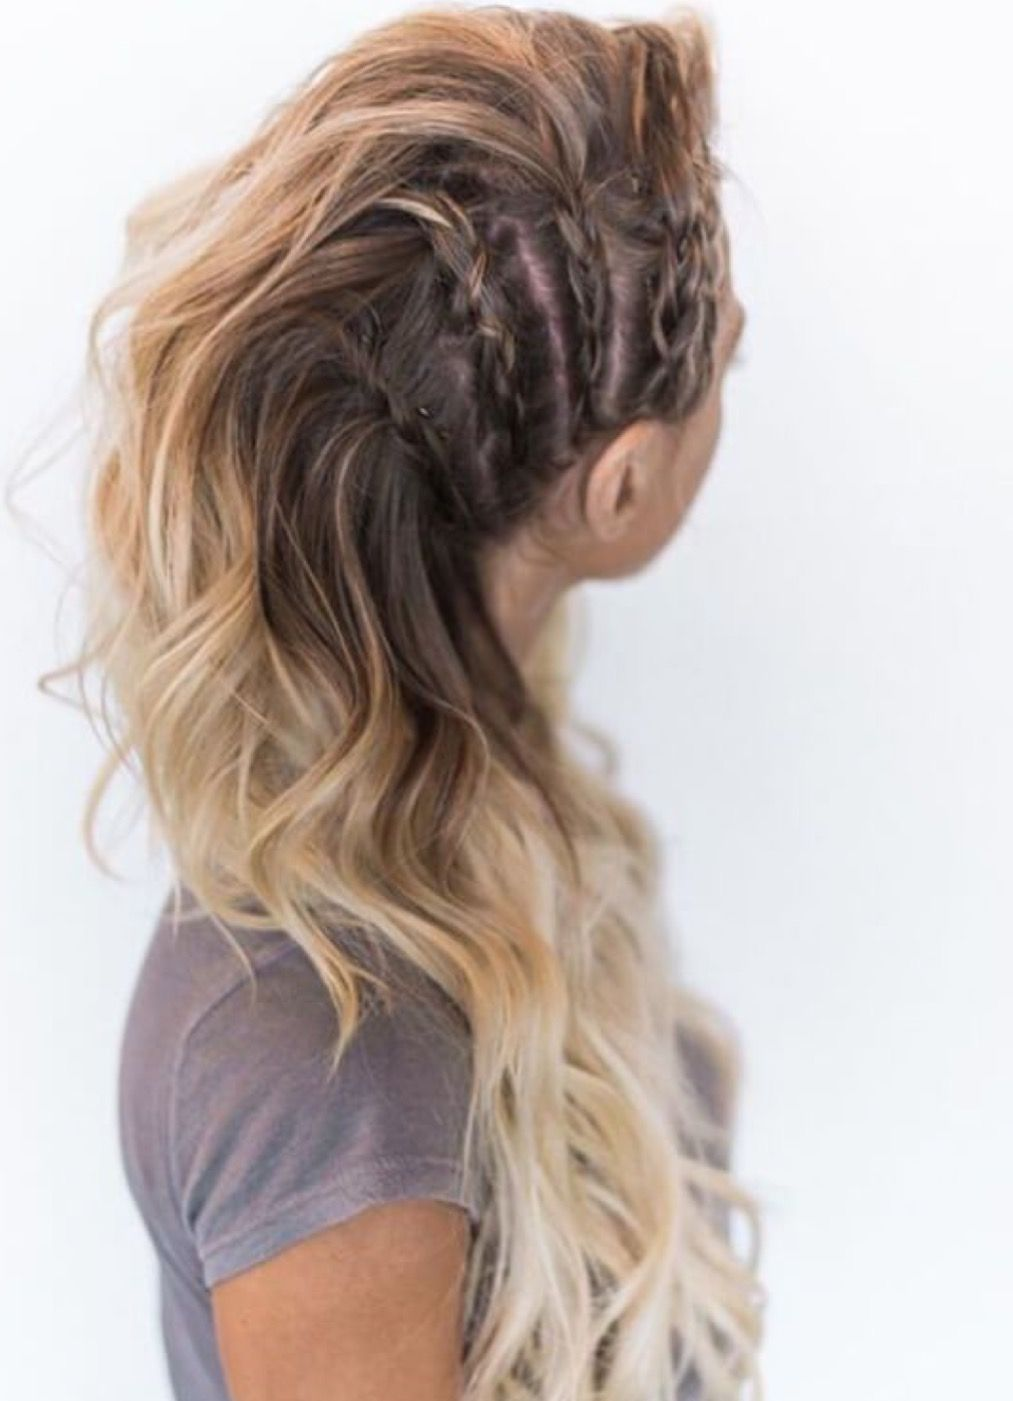 Avantegardeinspired side braid faux mohawk with curls all falling